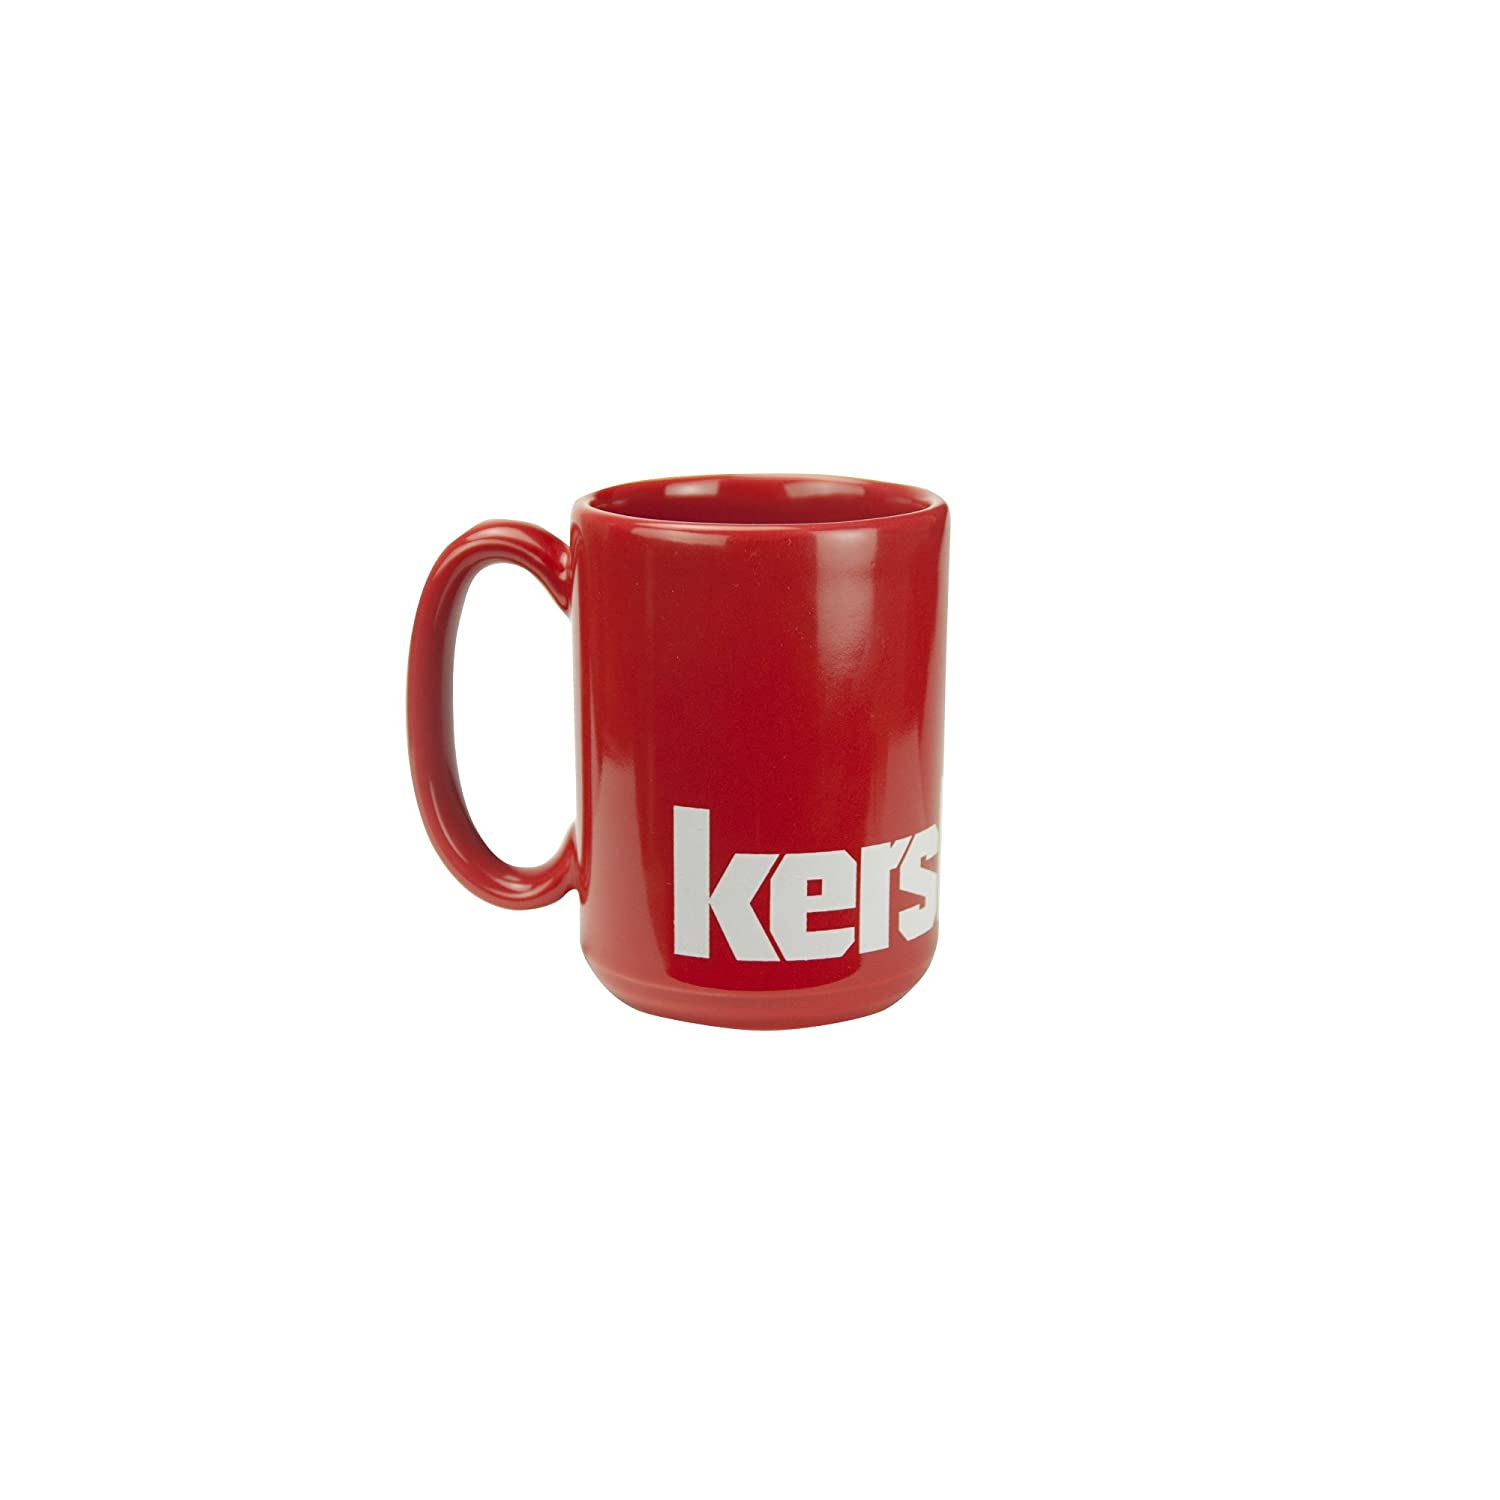 Kershaw Single Wall Ceramic Mug; 15 oz.; Bold Red Glossy Exterior and Interior; Versatile and Durable Hot Beverage Mug for Home or Outdoors; White Kershaw Logo Around Base; Microwave Safe; Lead-Free